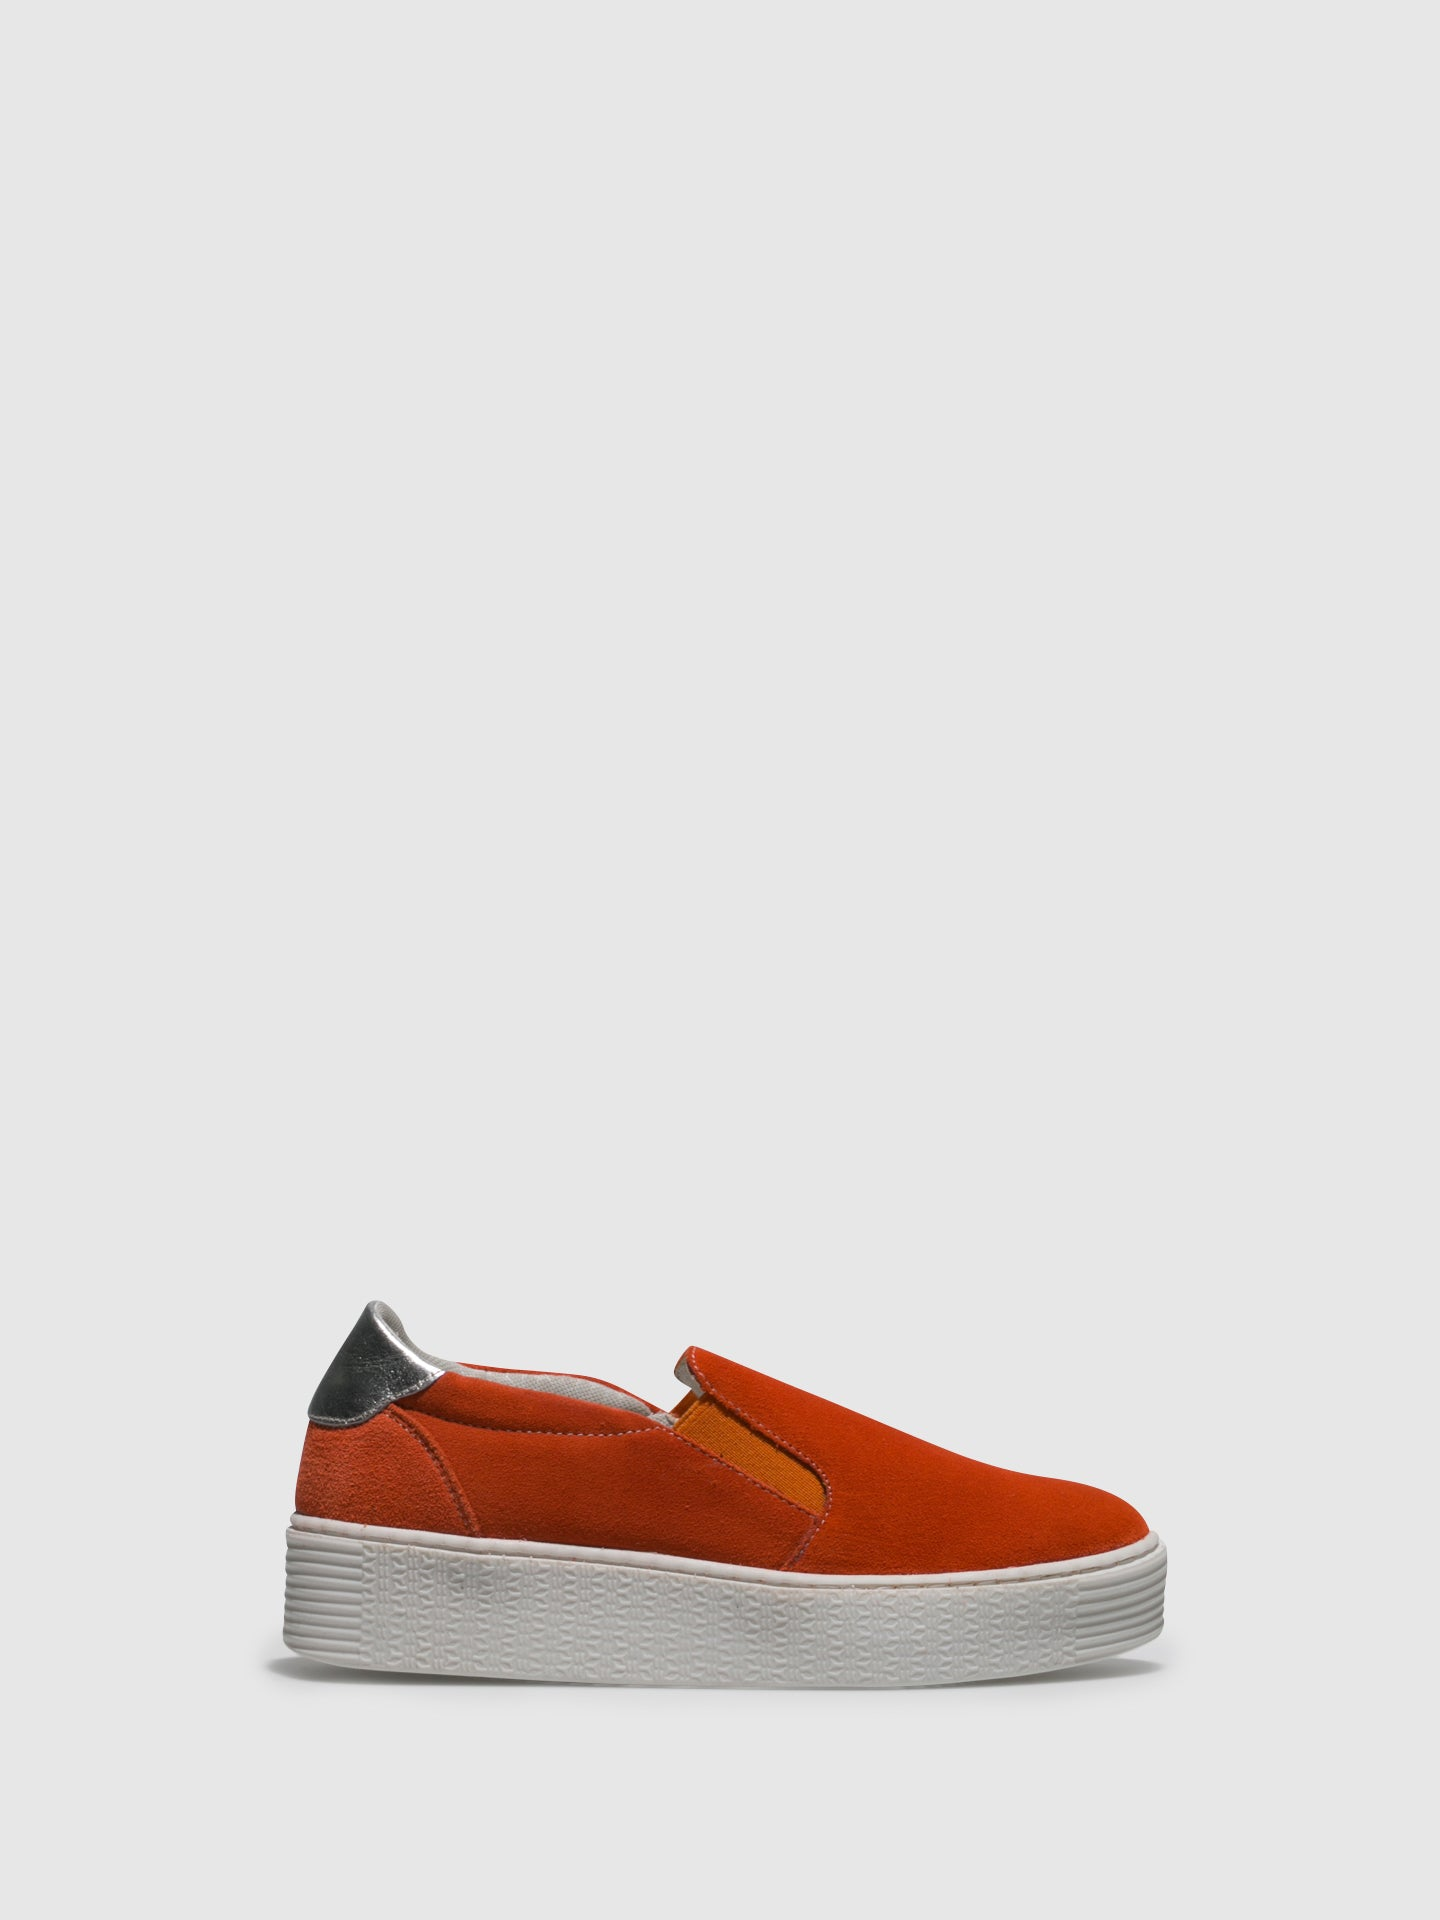 Bos&Co Orange Slip-on Trainers